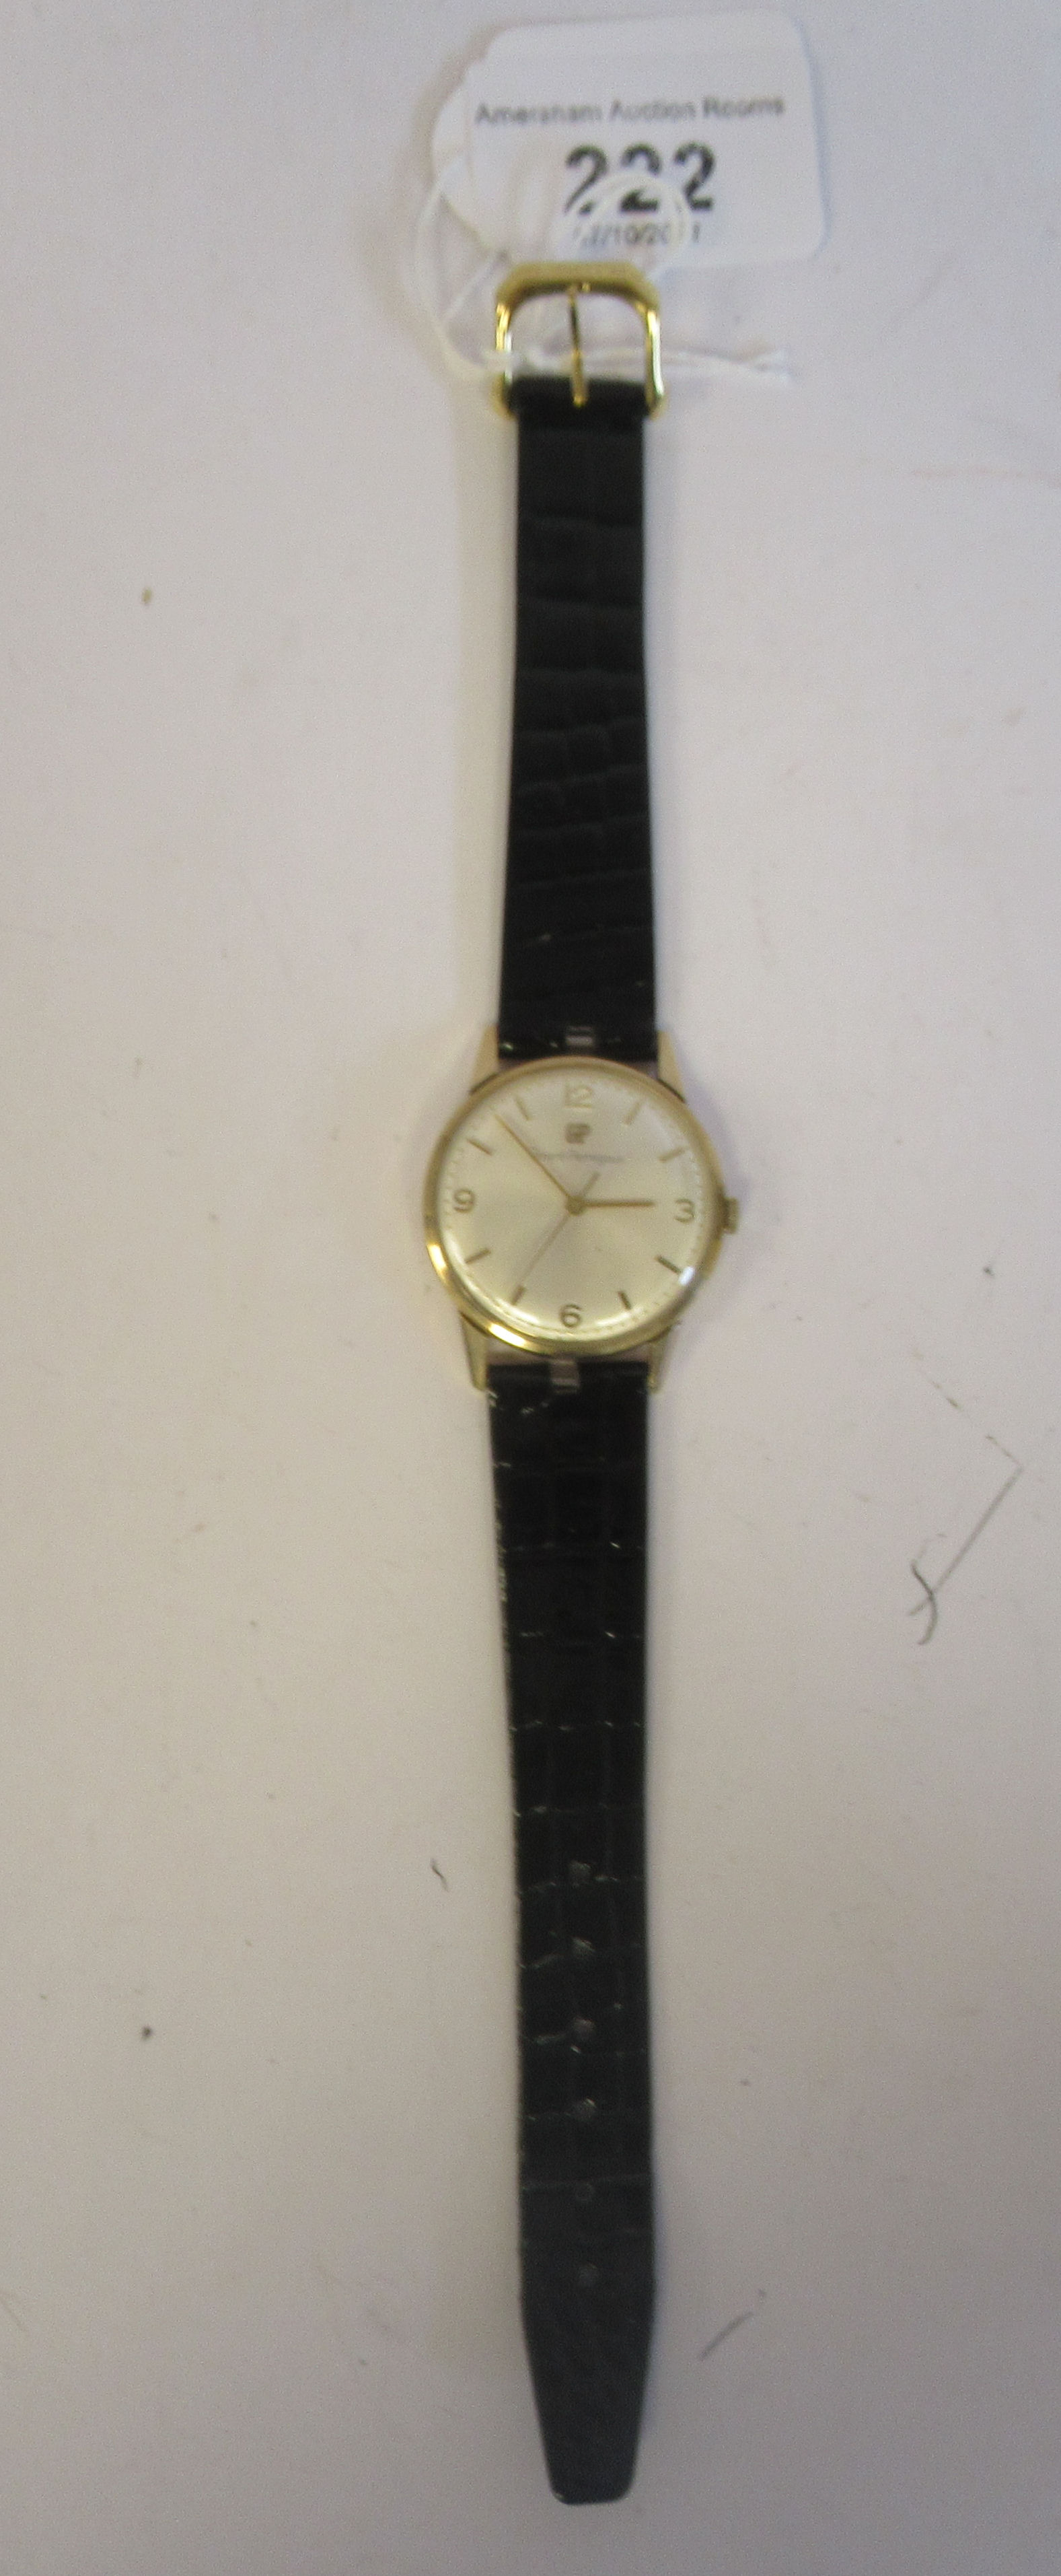 A 1966 Giraird-Perregaux 9ct gold cased wristwatch, the movement with sweeping seconds, faced by - Image 3 of 5